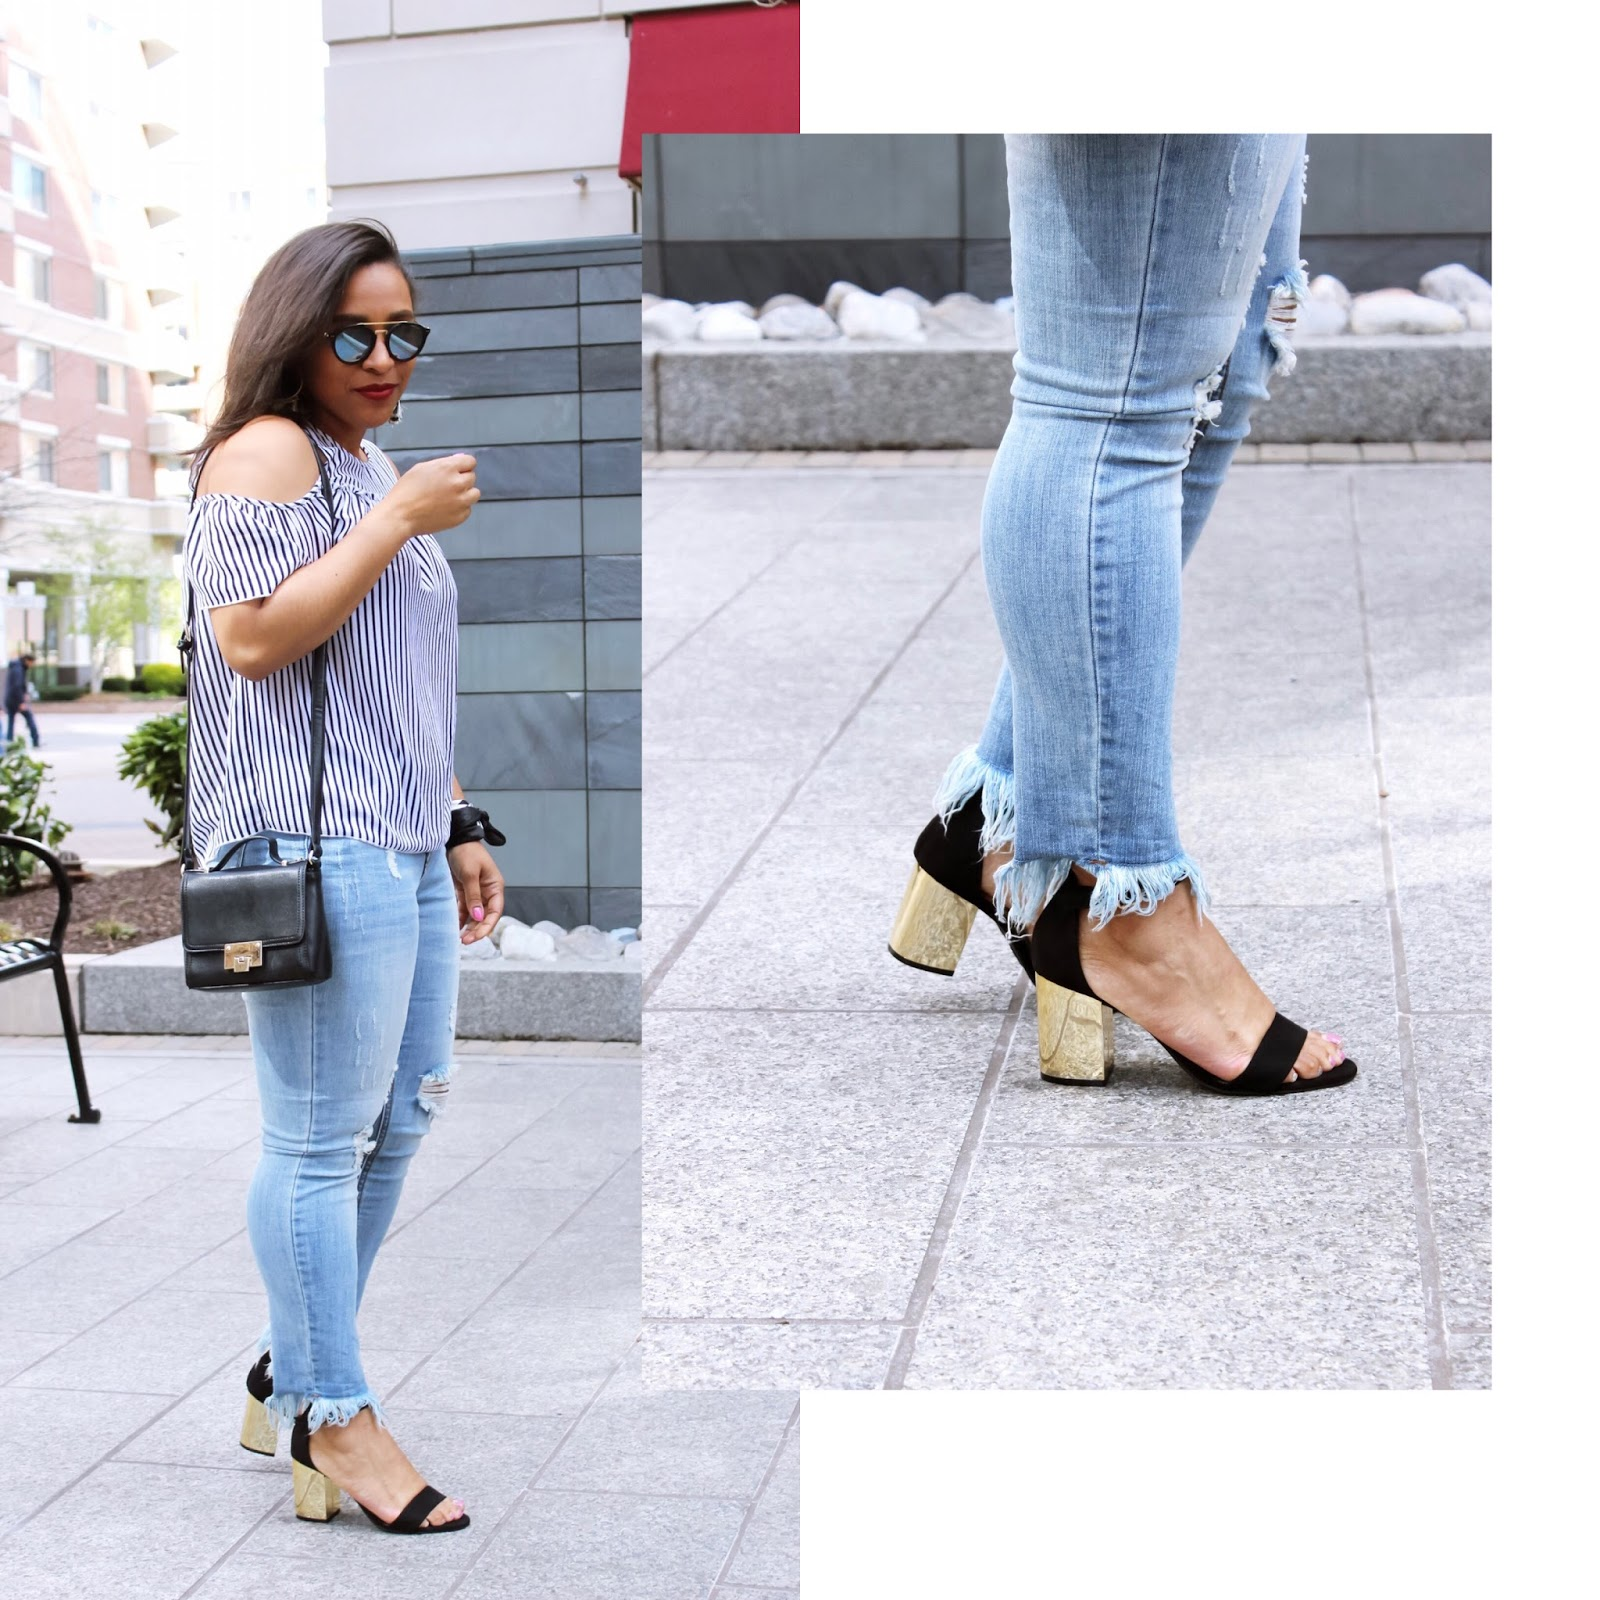 off the shoulder trend, off the shoulder top, stripes, blue, kapten and son sunglasses, block heels, trendy outfits, spring outfits, blue